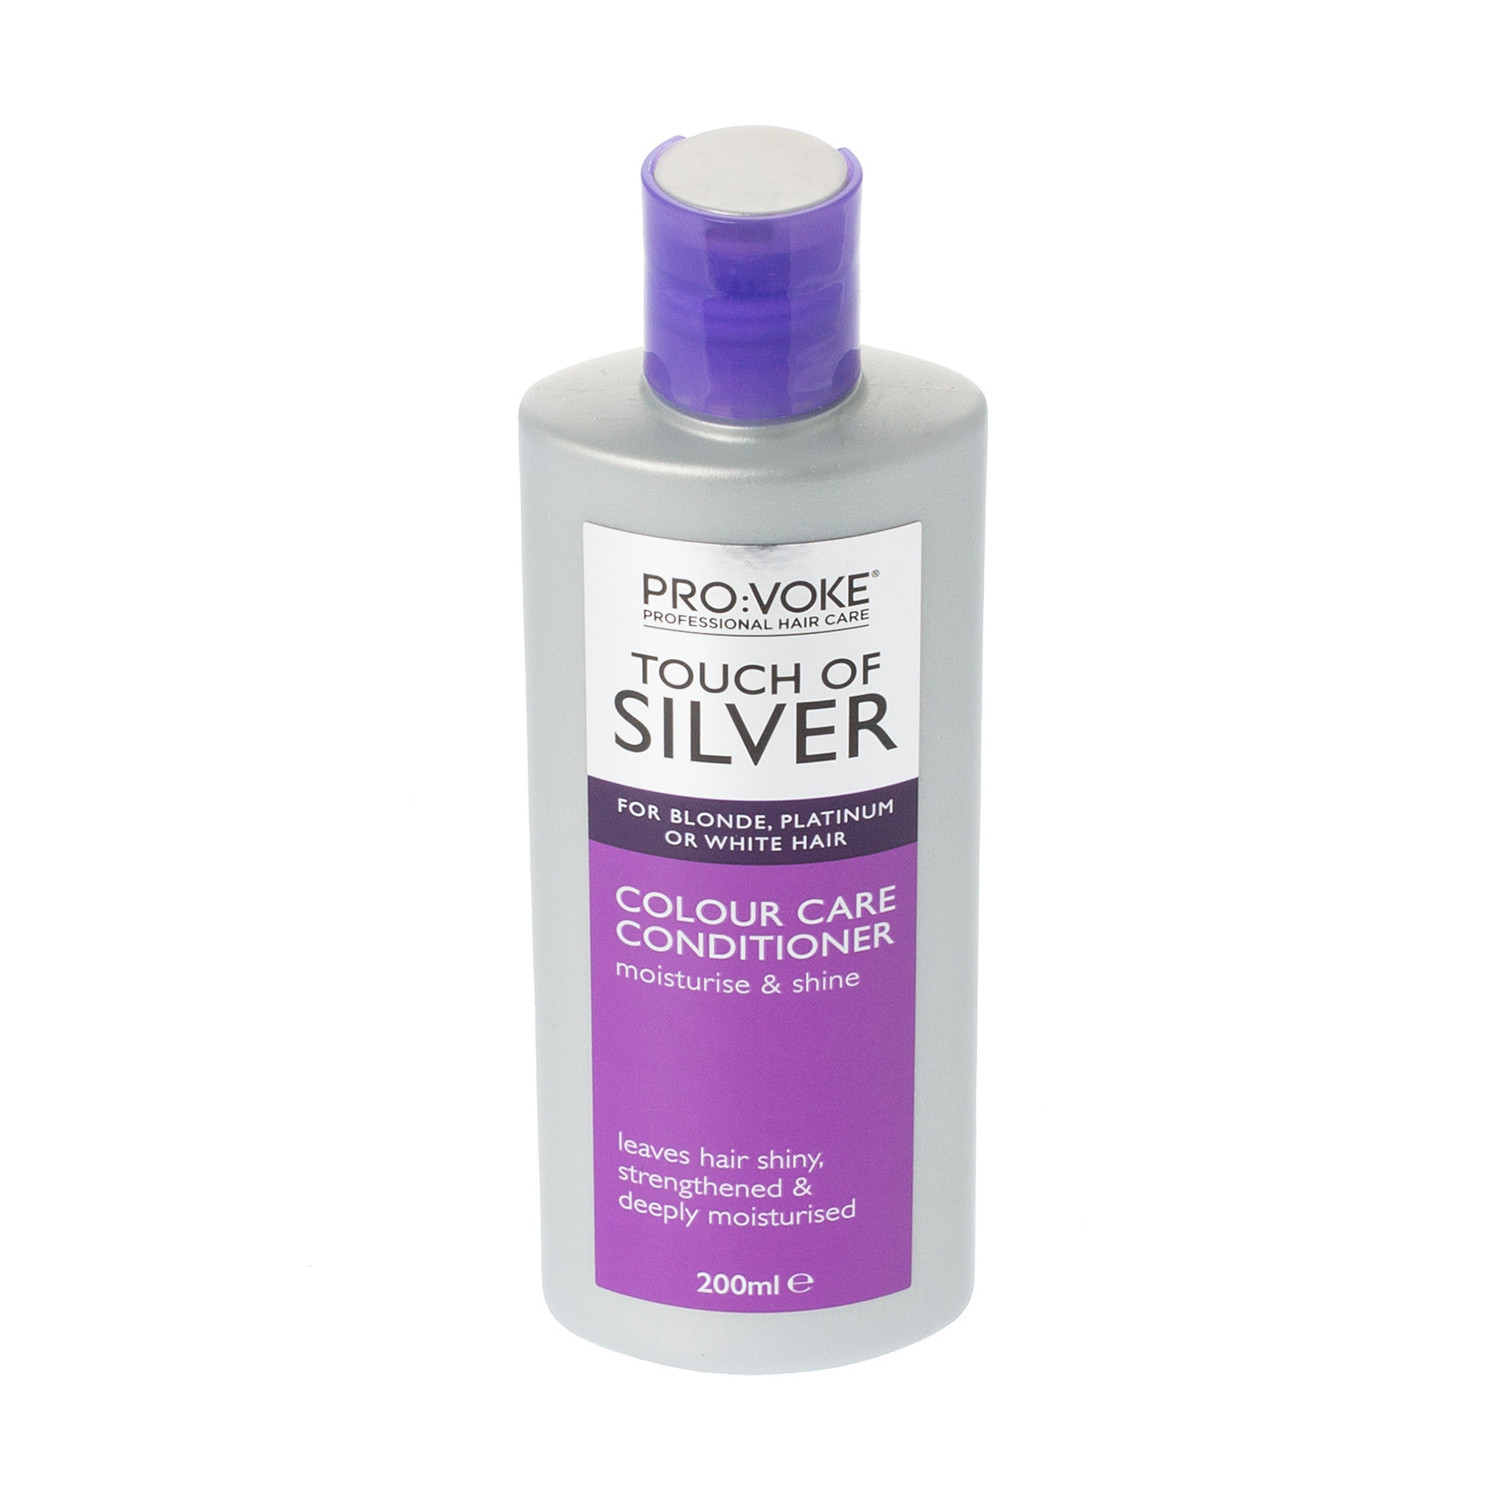 PRO:VOKE Touch Of Silver Colour Care Conditioner